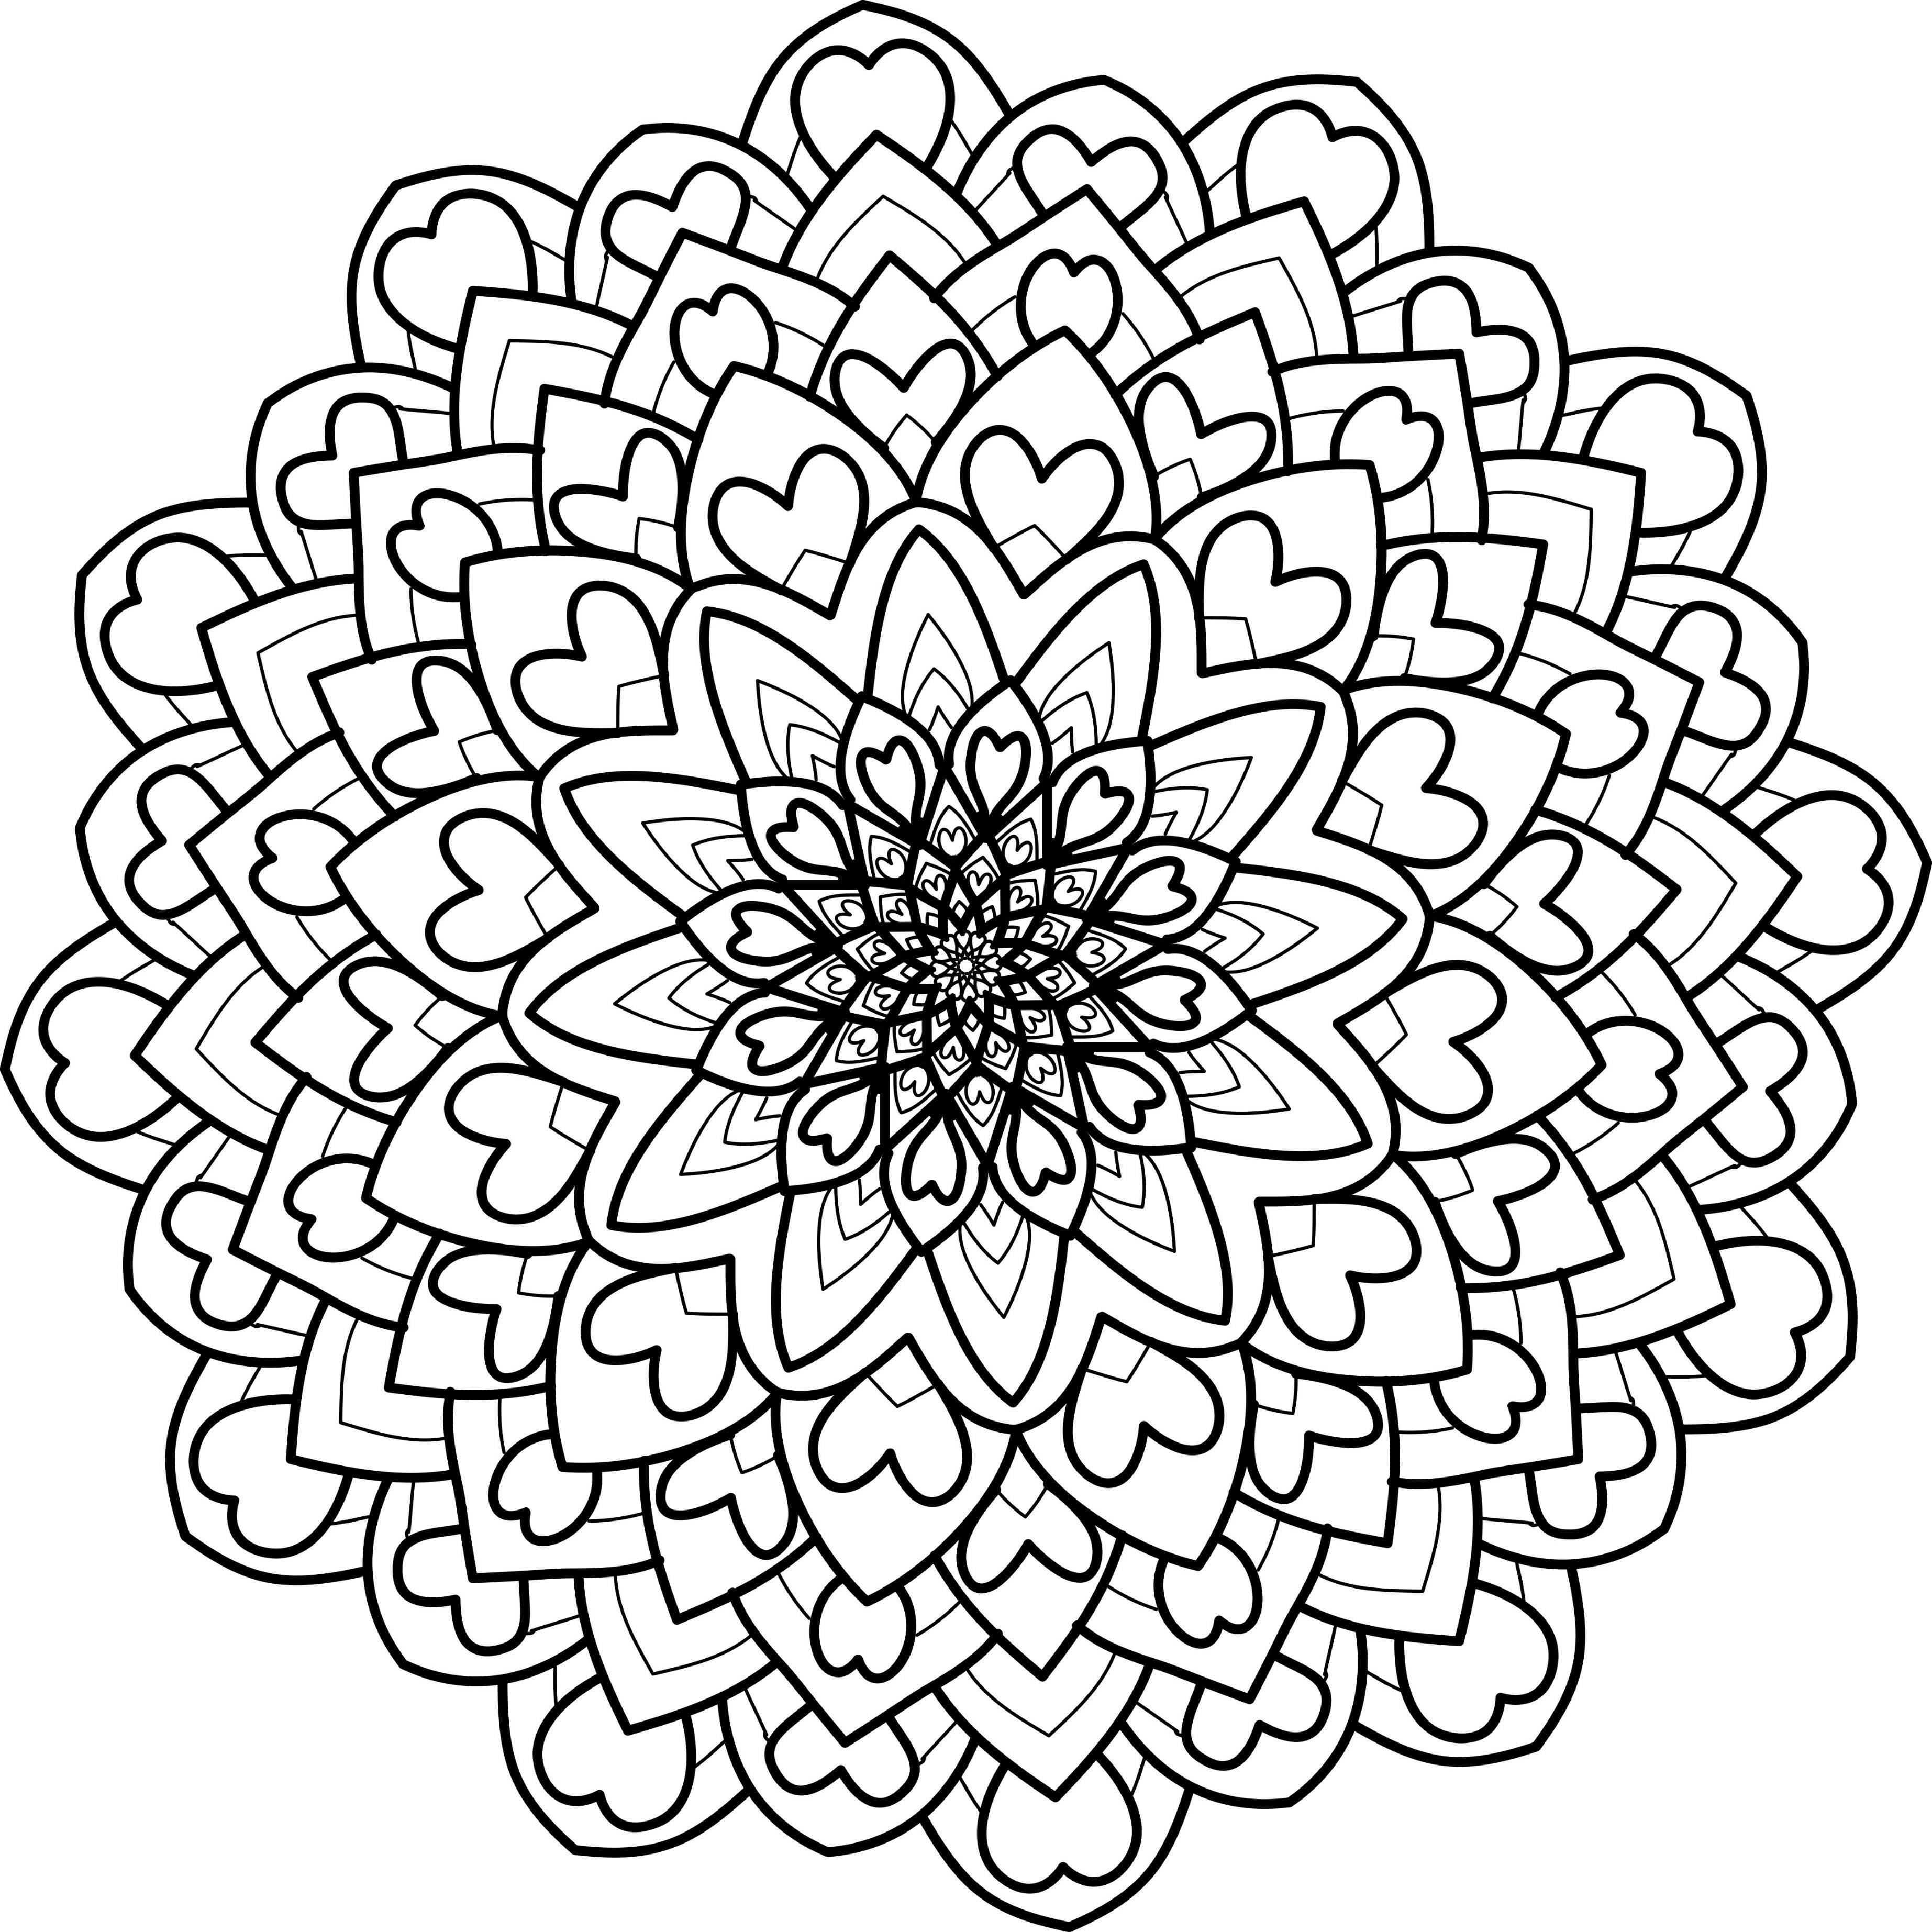 coloring sheets you can print coloring pages that you can print free download on sheets print you can coloring